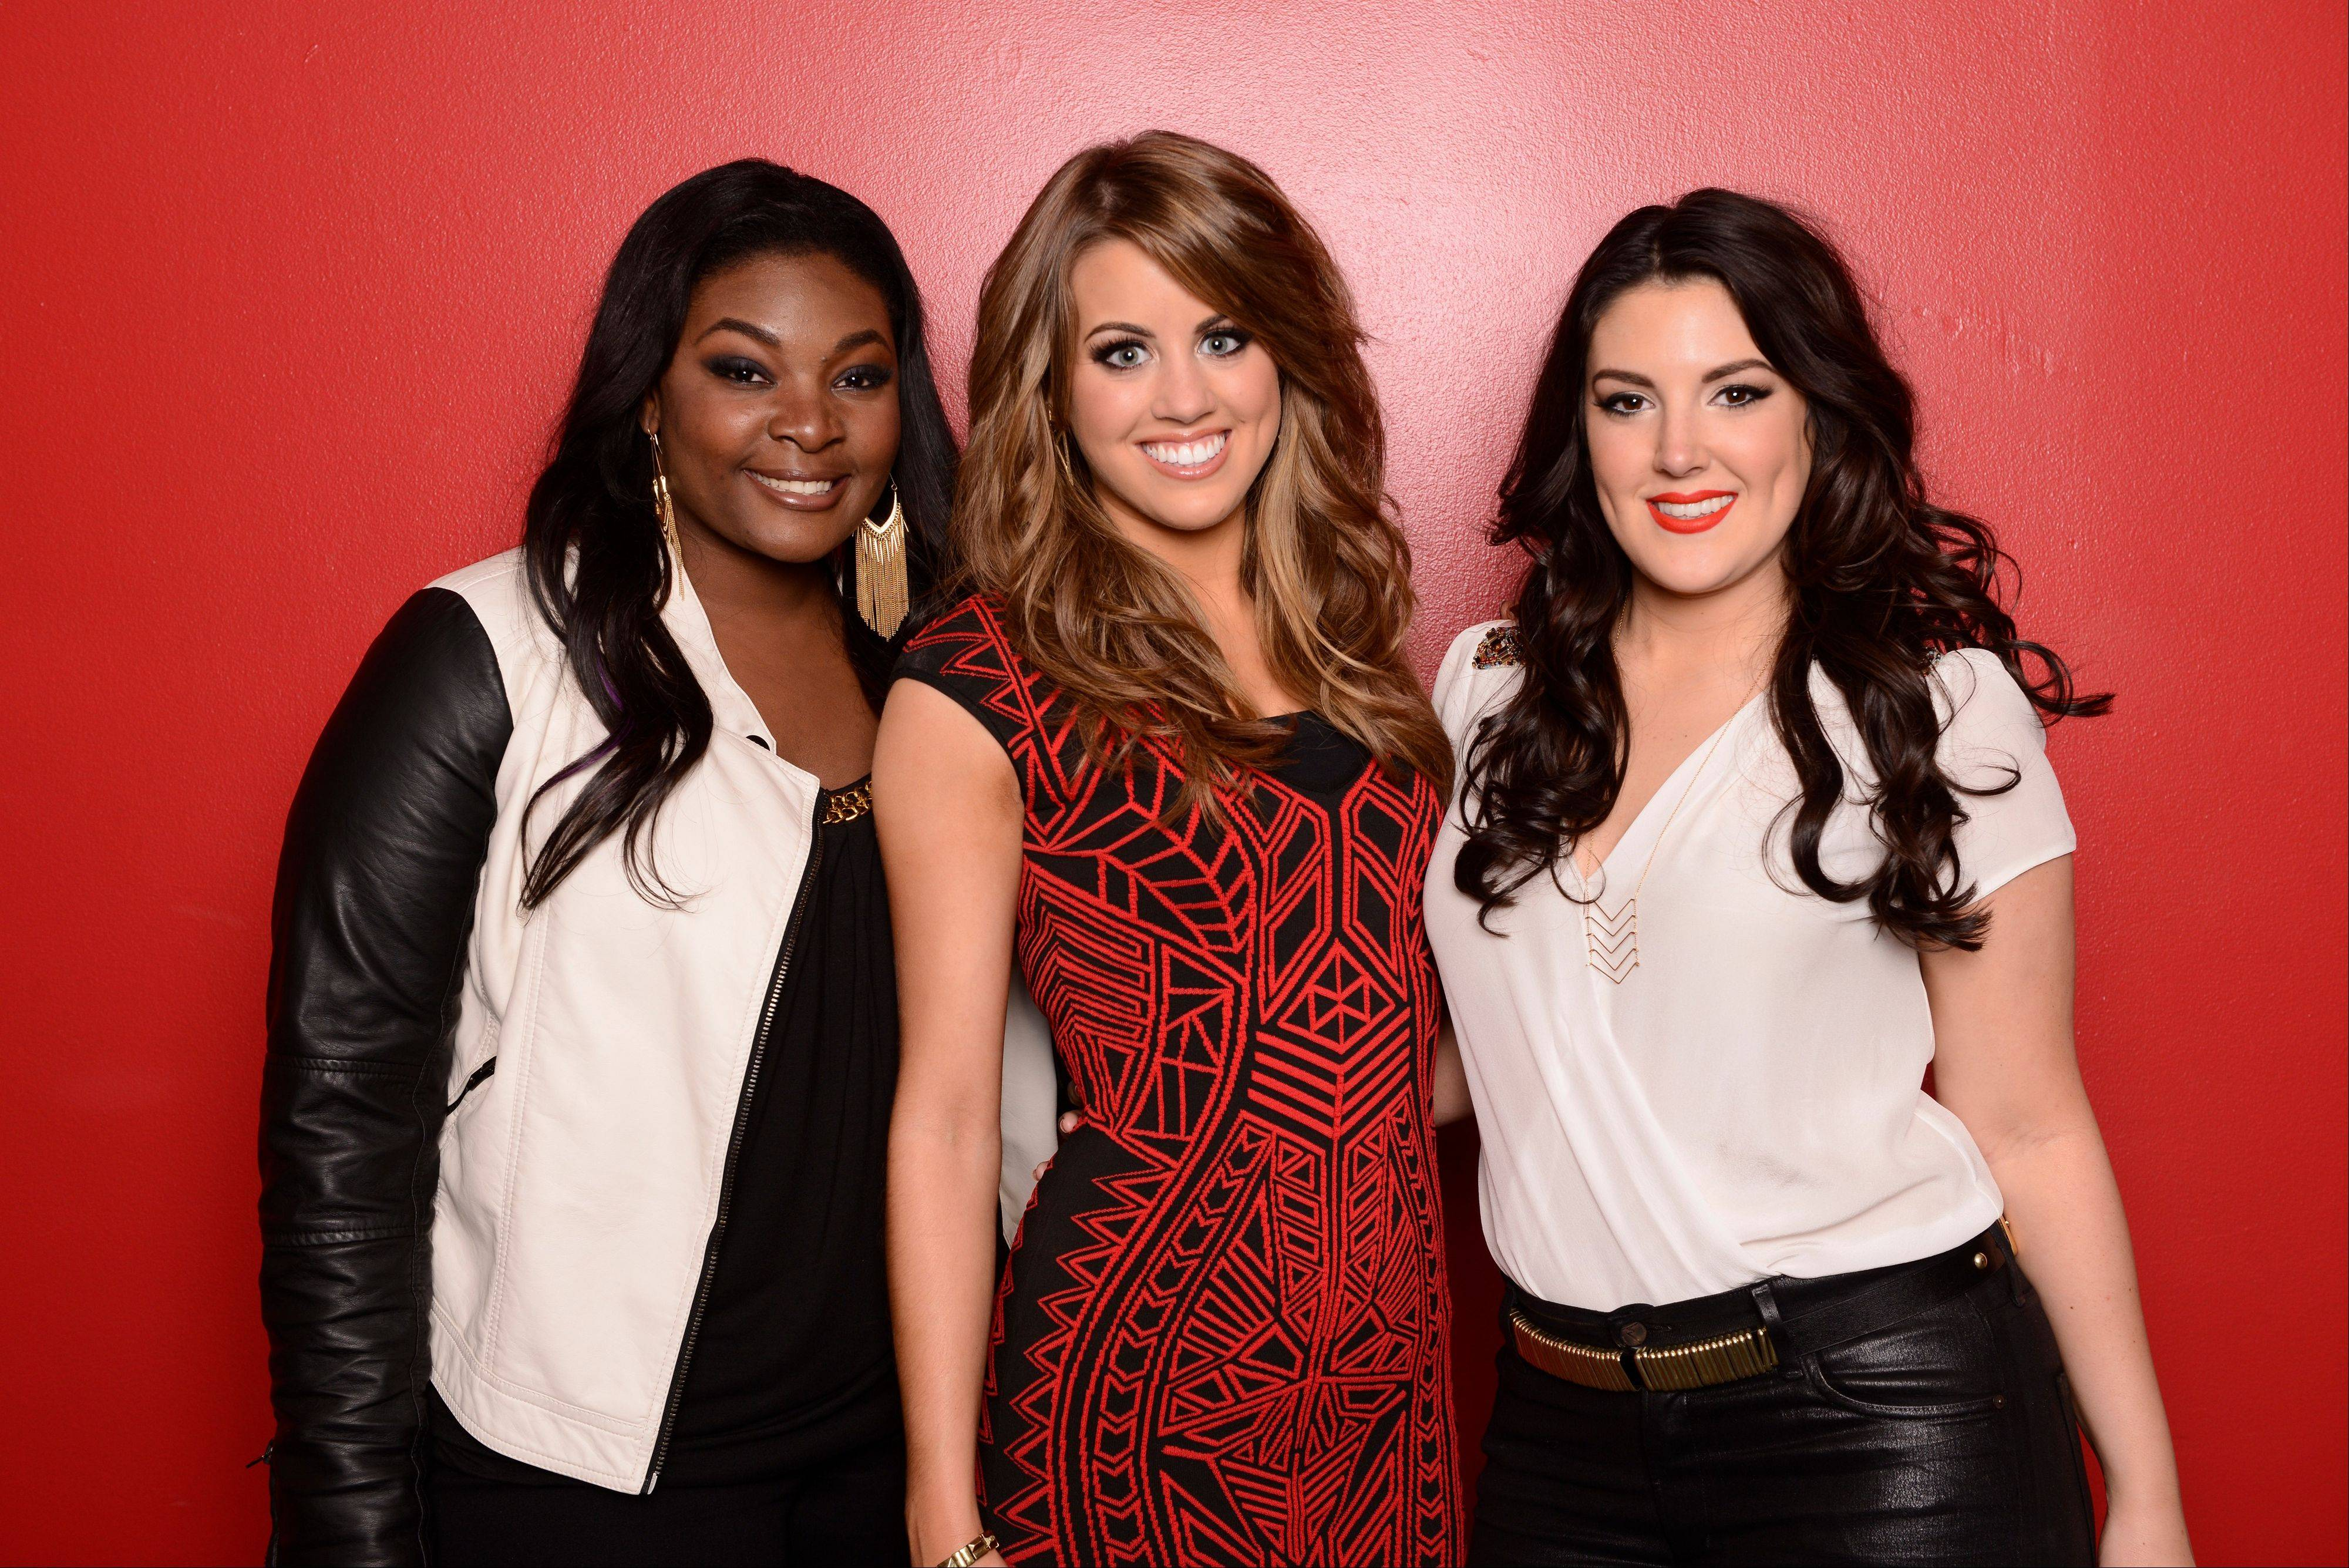 Angie Miller, center, received the fewest viewer votes on �American Idol� Wednesday, leaving Candice Glover, left, and Kree Harrison to duke it out for the grand prize on next week�s finale.